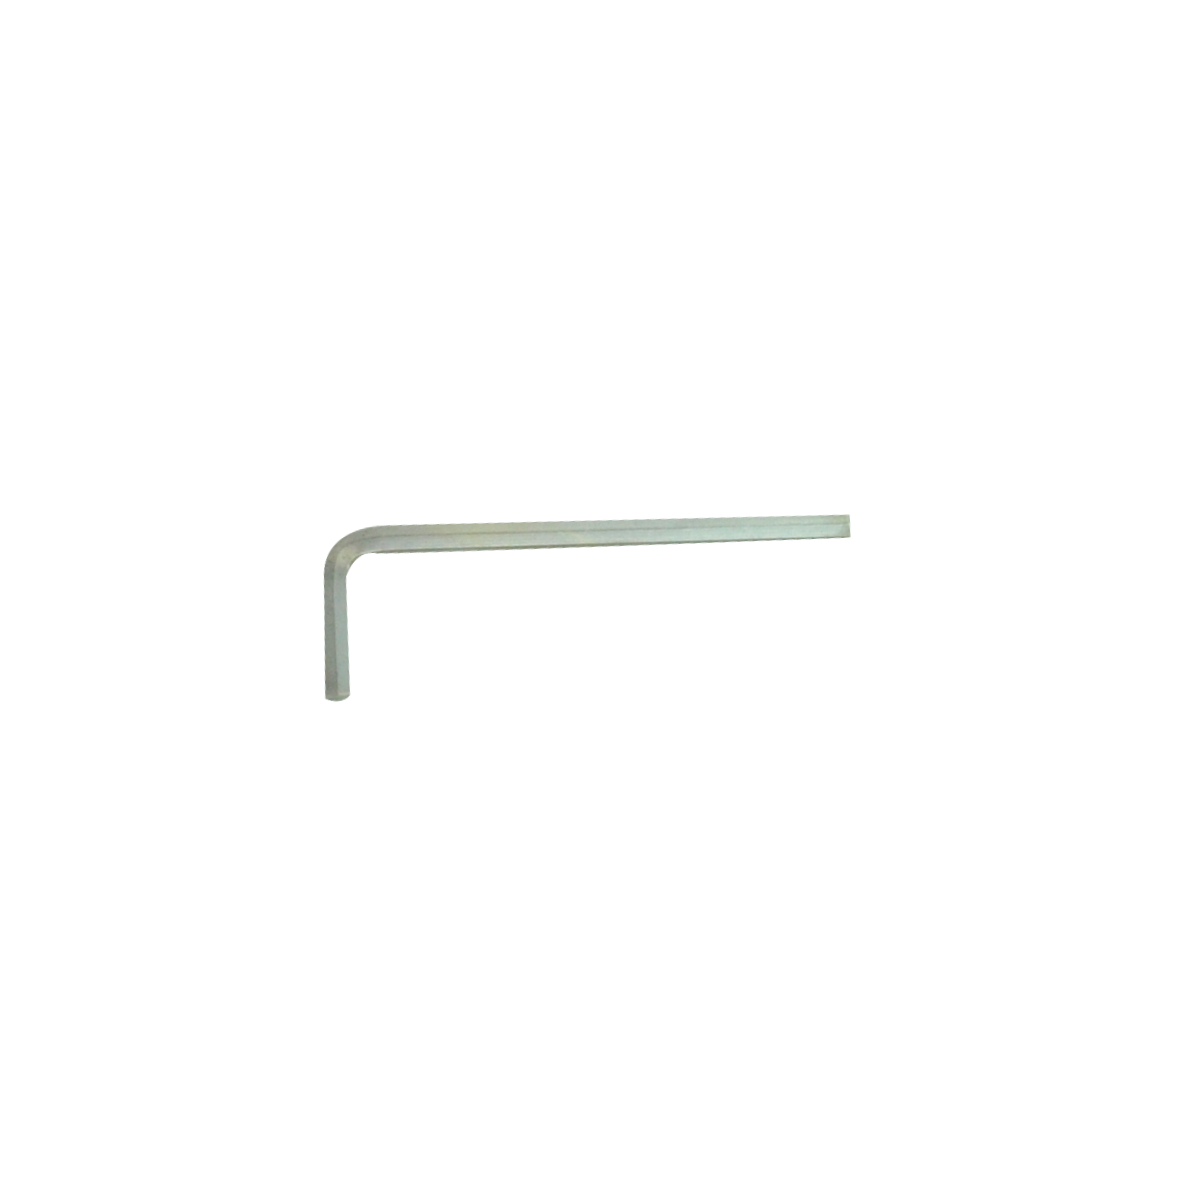 Allen Key 3.0mm (to use with Cat no 205.155 & 205.156)